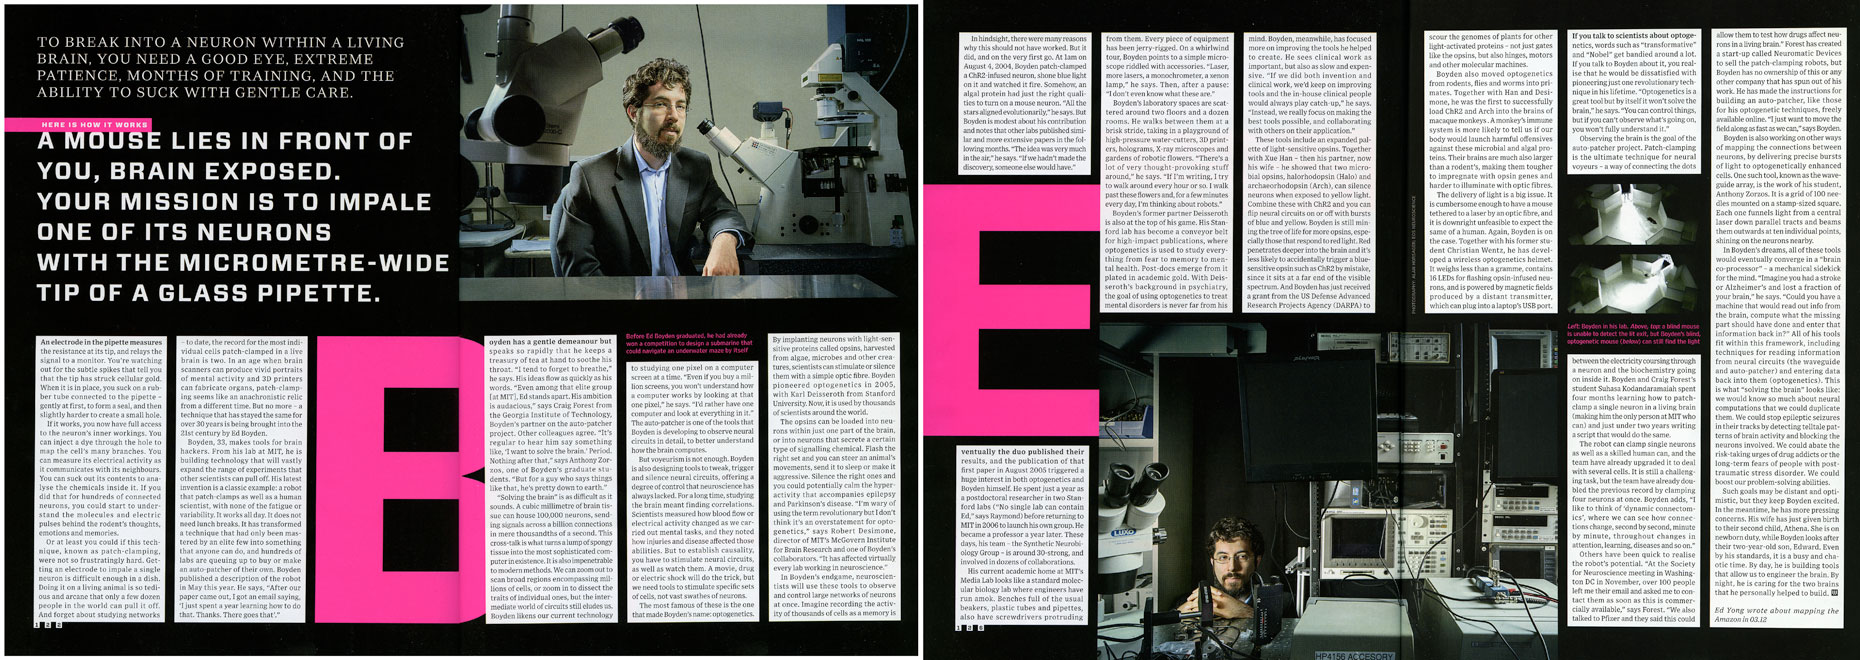 WIRED UK: The MIT MEDIA LAB. November 2012 issue  - SPREAD 5 and 6: Ed Boyden